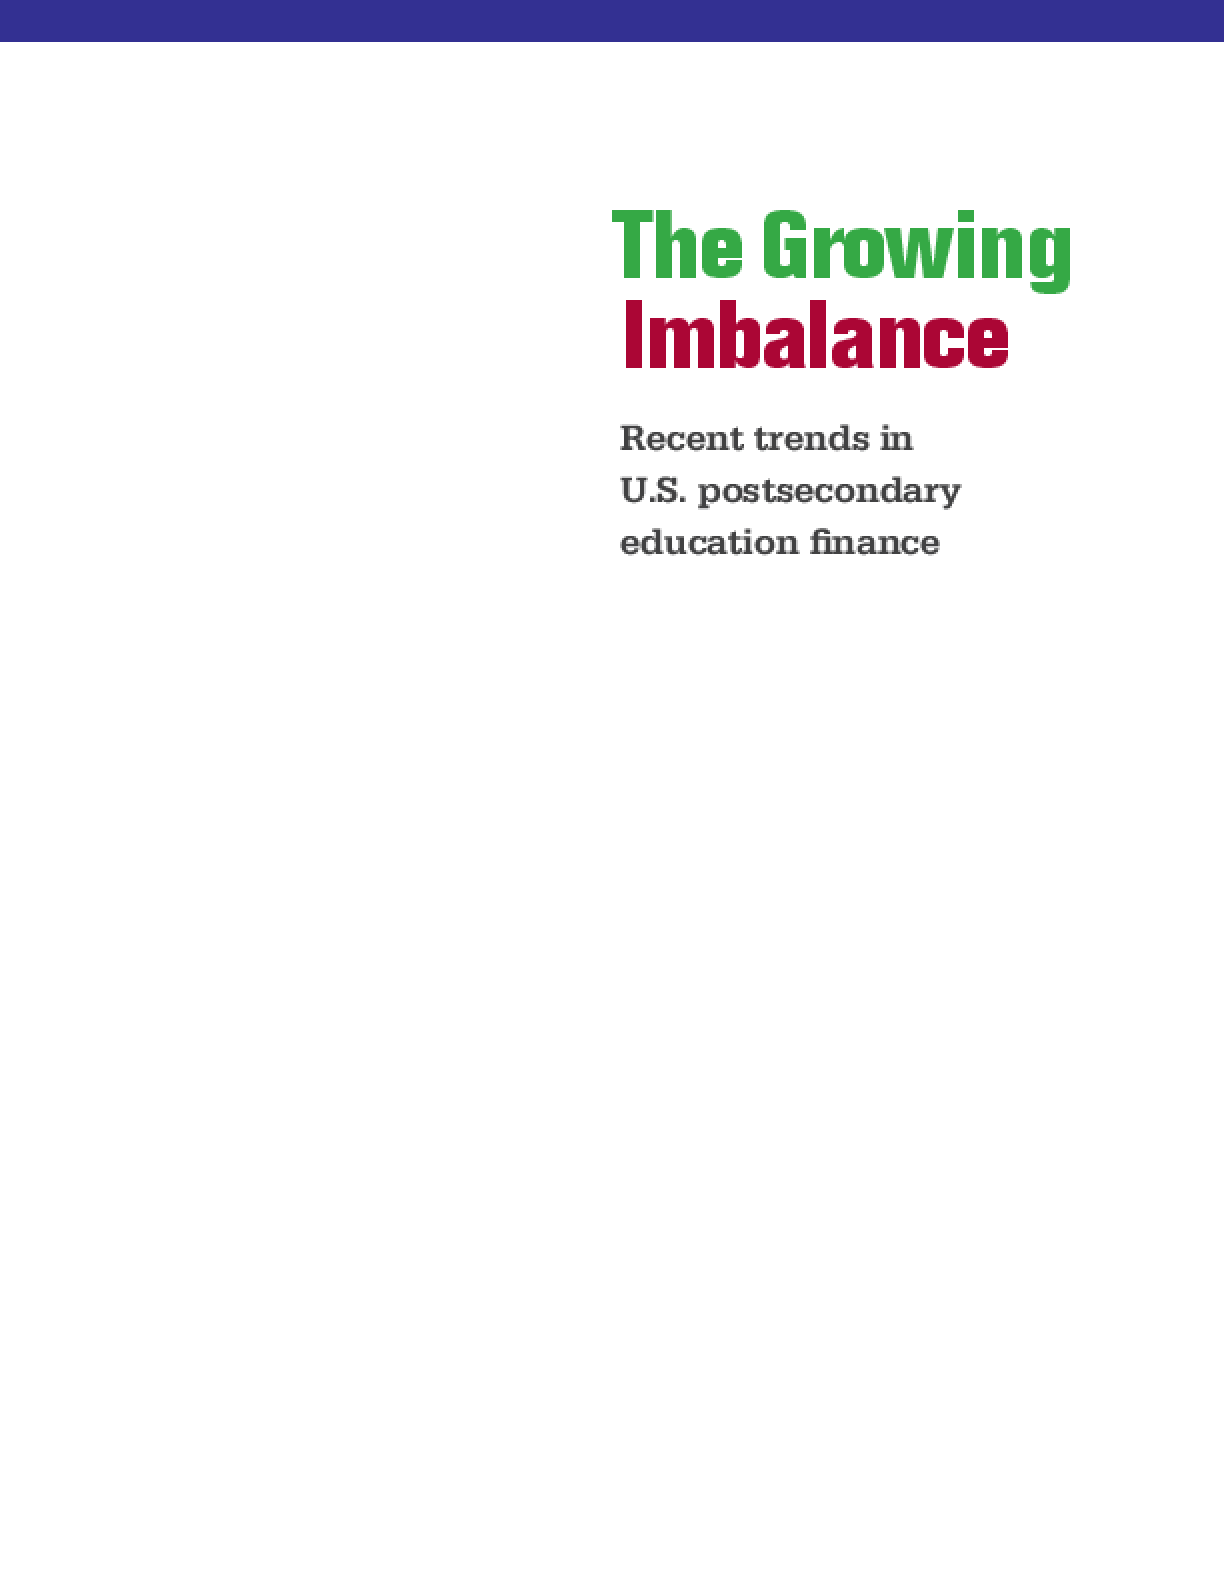 The Growing Imbalance: Recent Trends in U.S. Postsecondary Education Finance